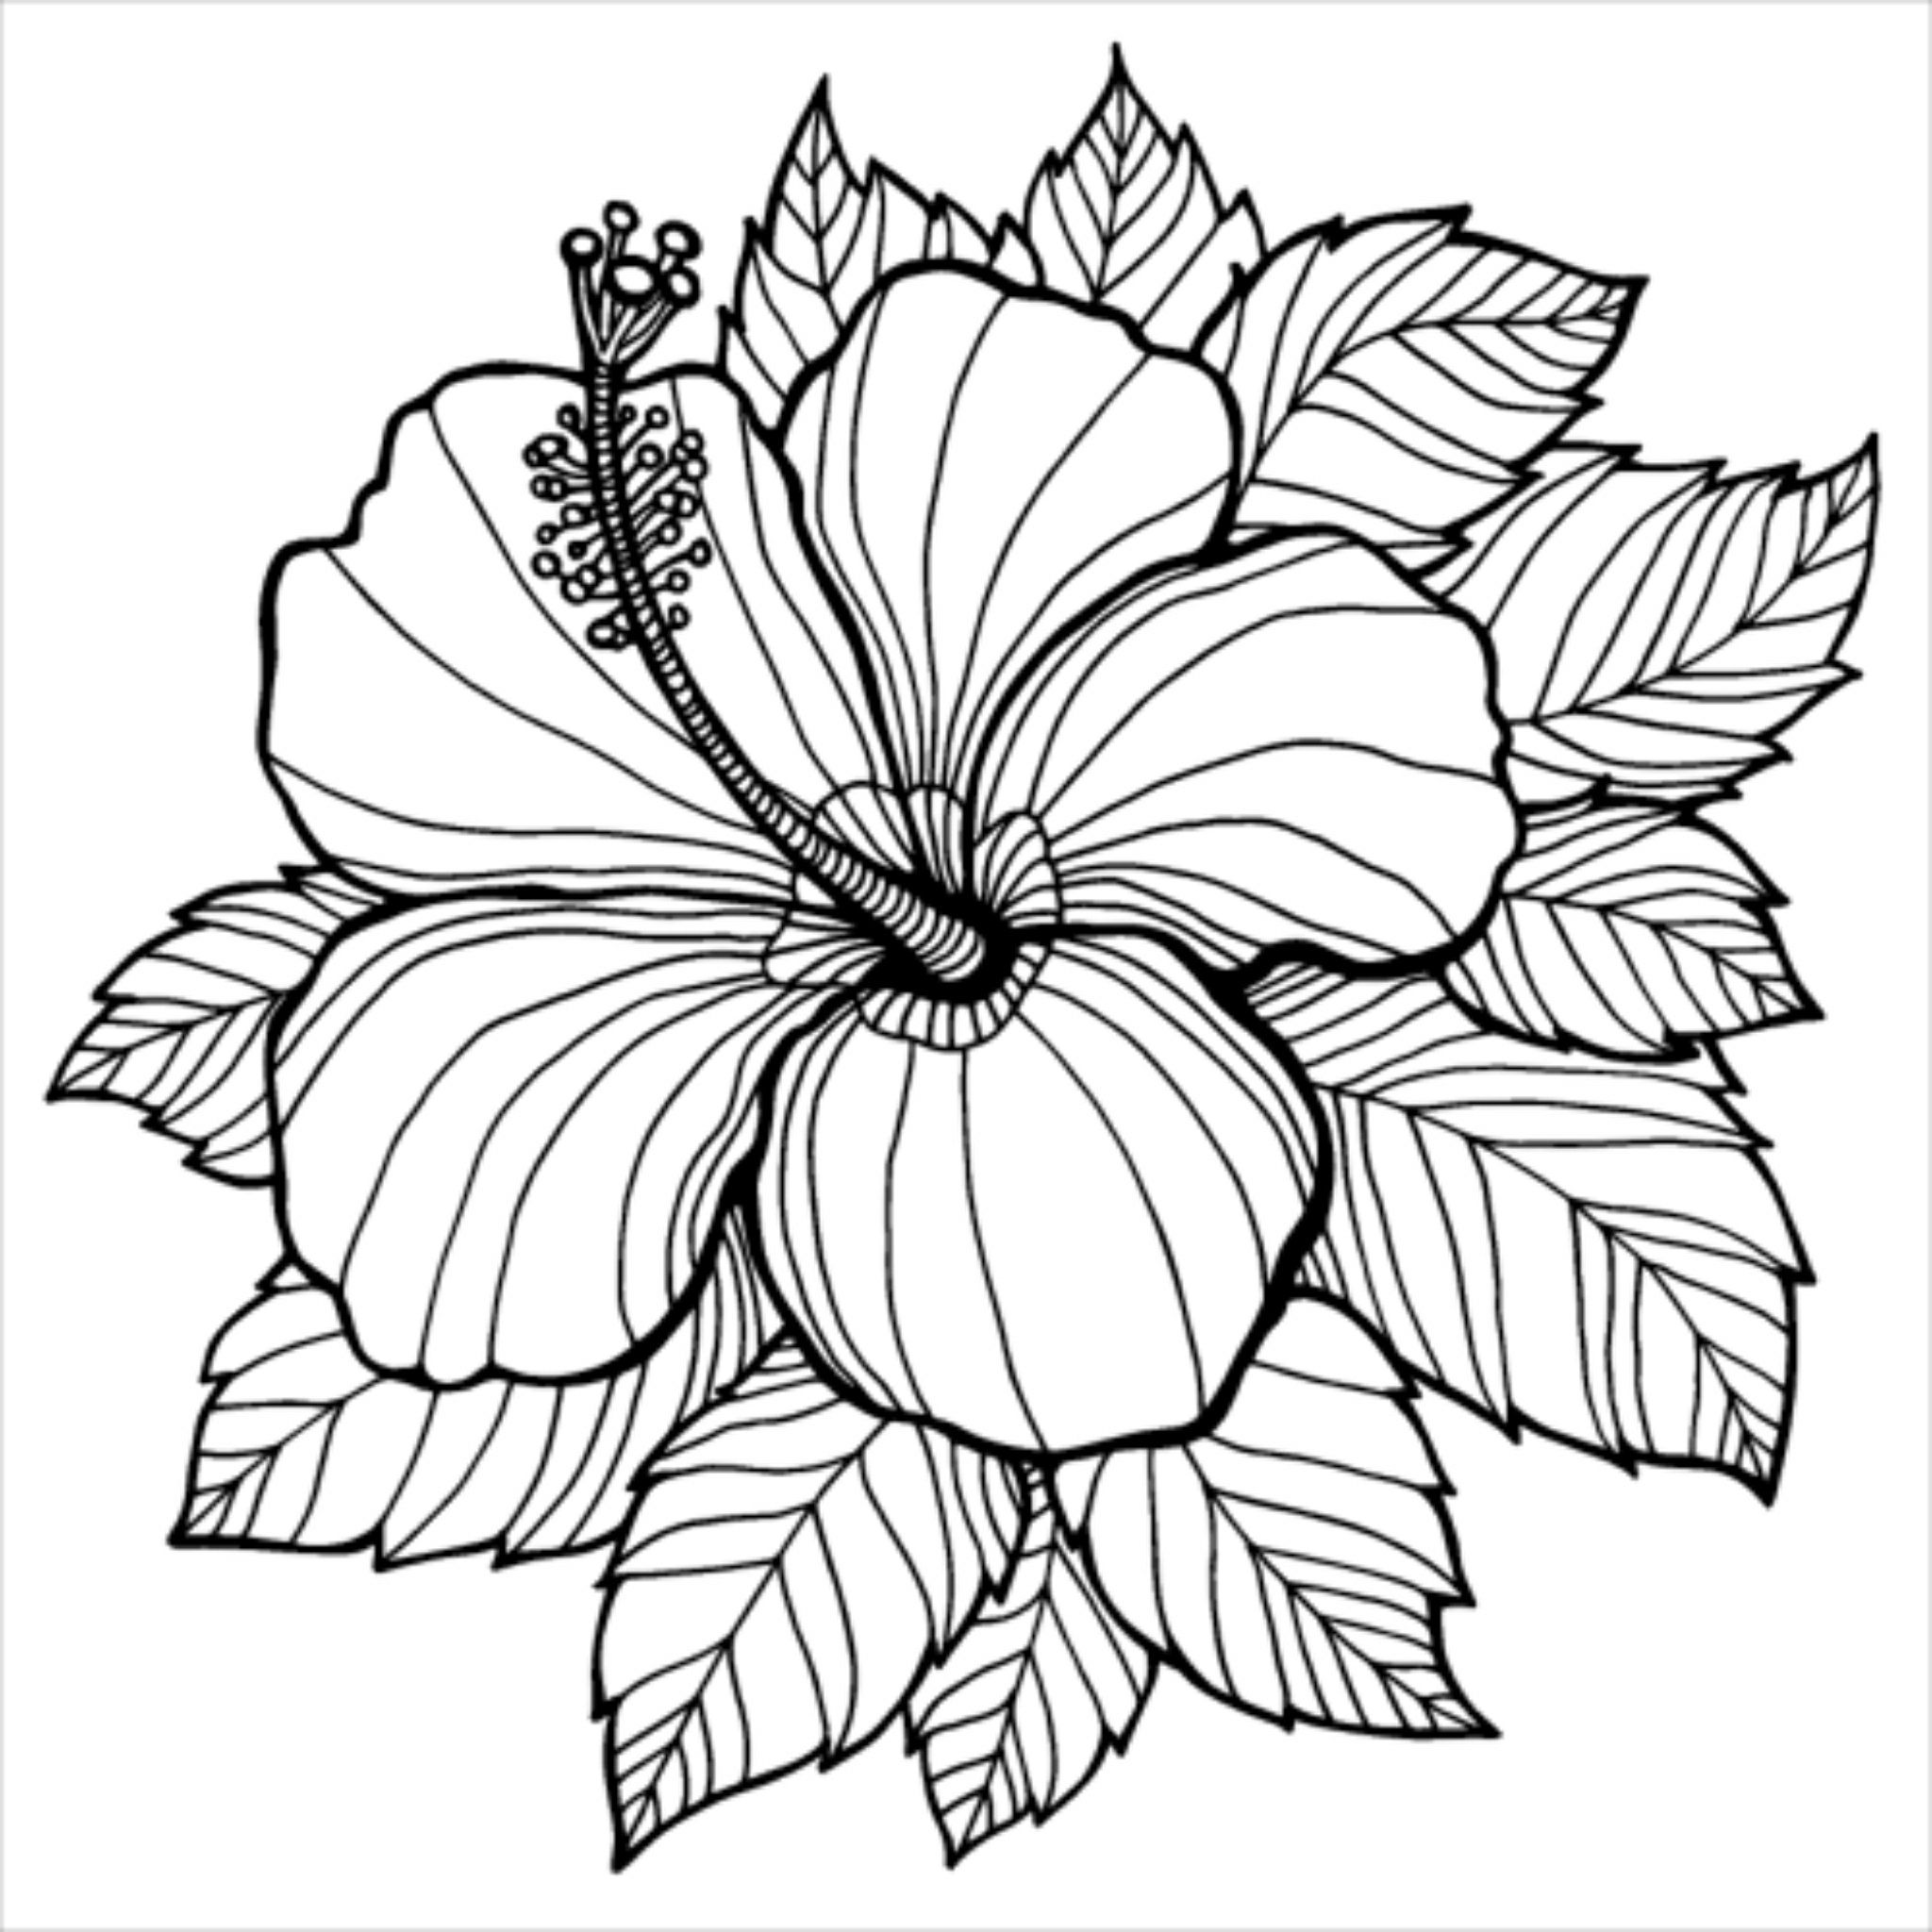 Expectations Resentments Flower Coloring Pages Coloring Pages Inspirational Coloring Pages